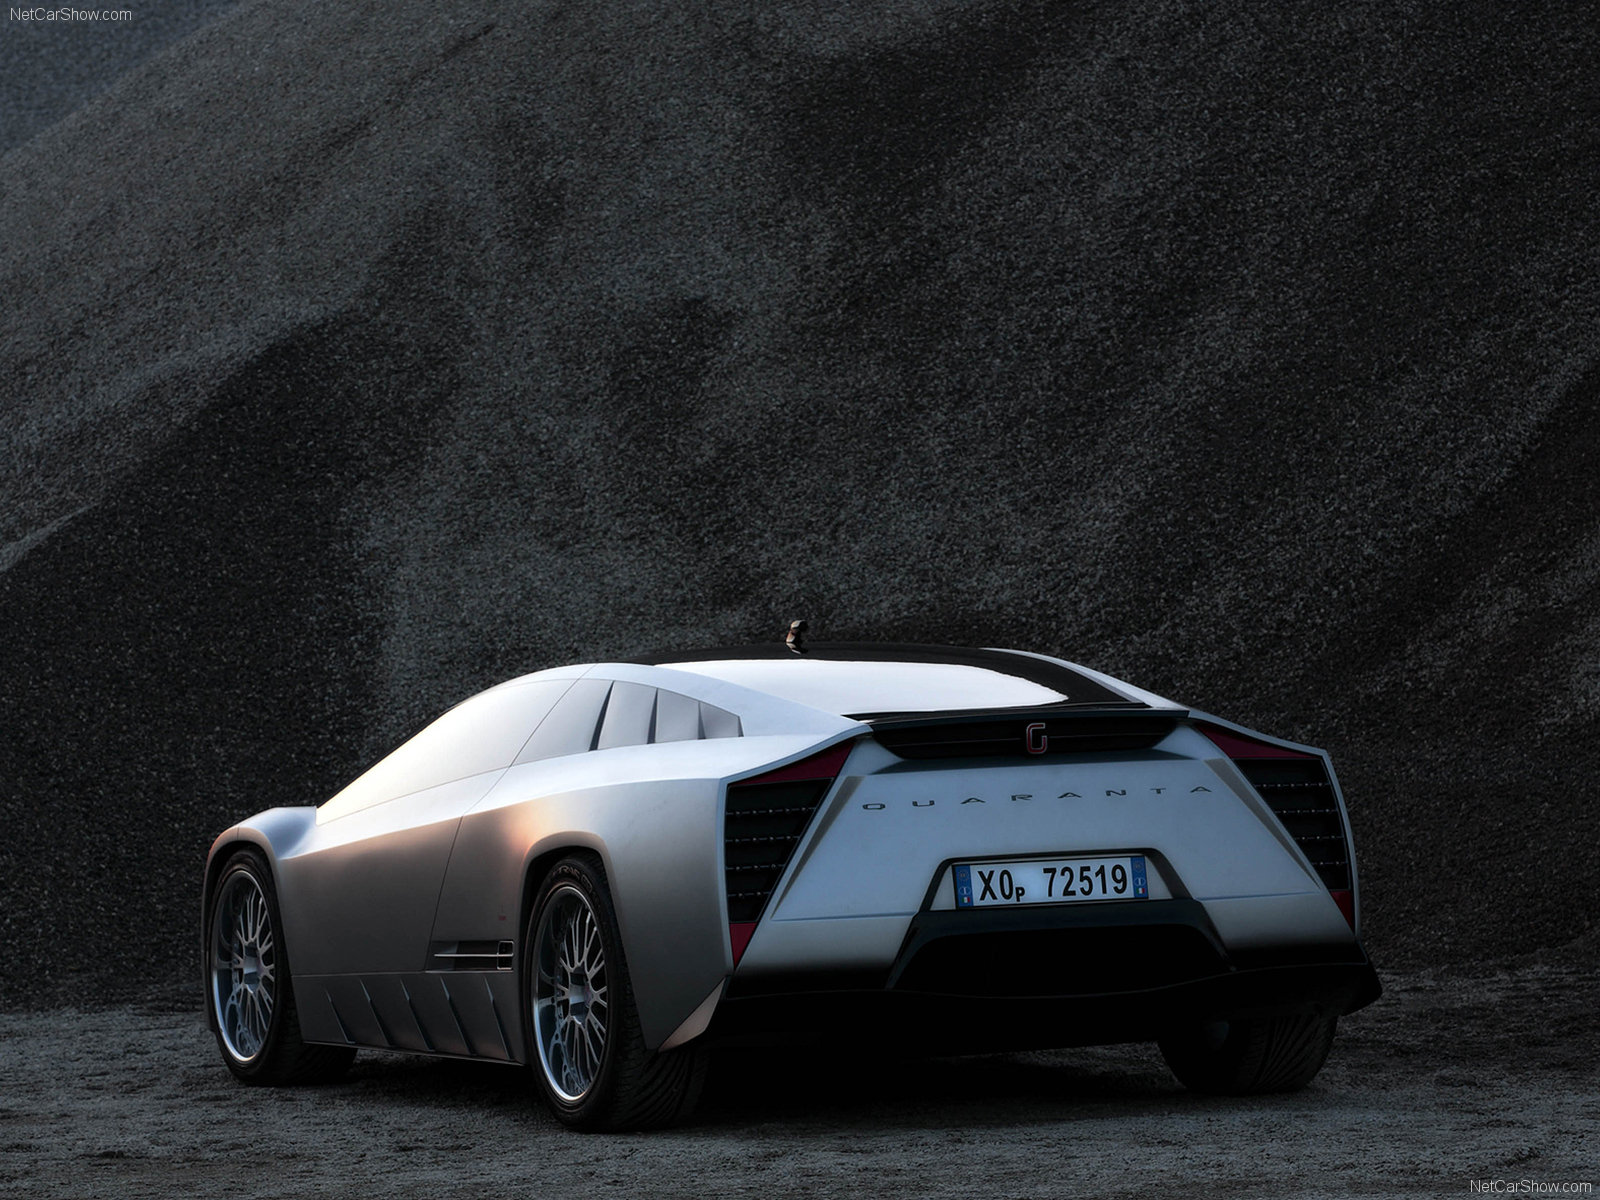 Italdesign Giugiaro Giugiardo Quaranta photo 52947